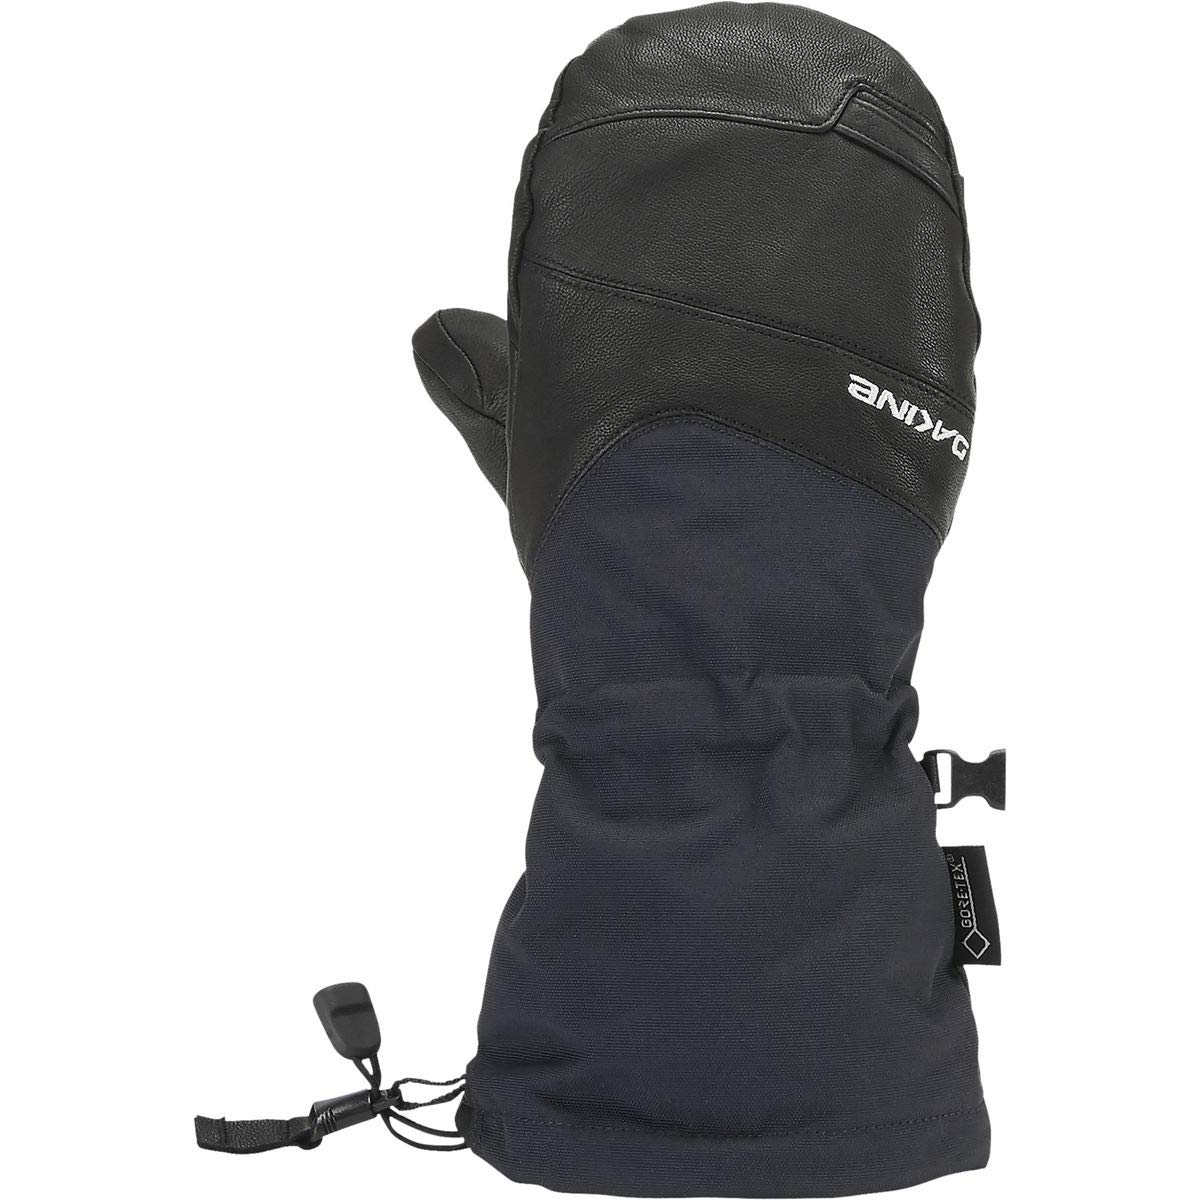 DAKINE Women's Continental Gore-Tex Mitt (S - Black) by Dakine